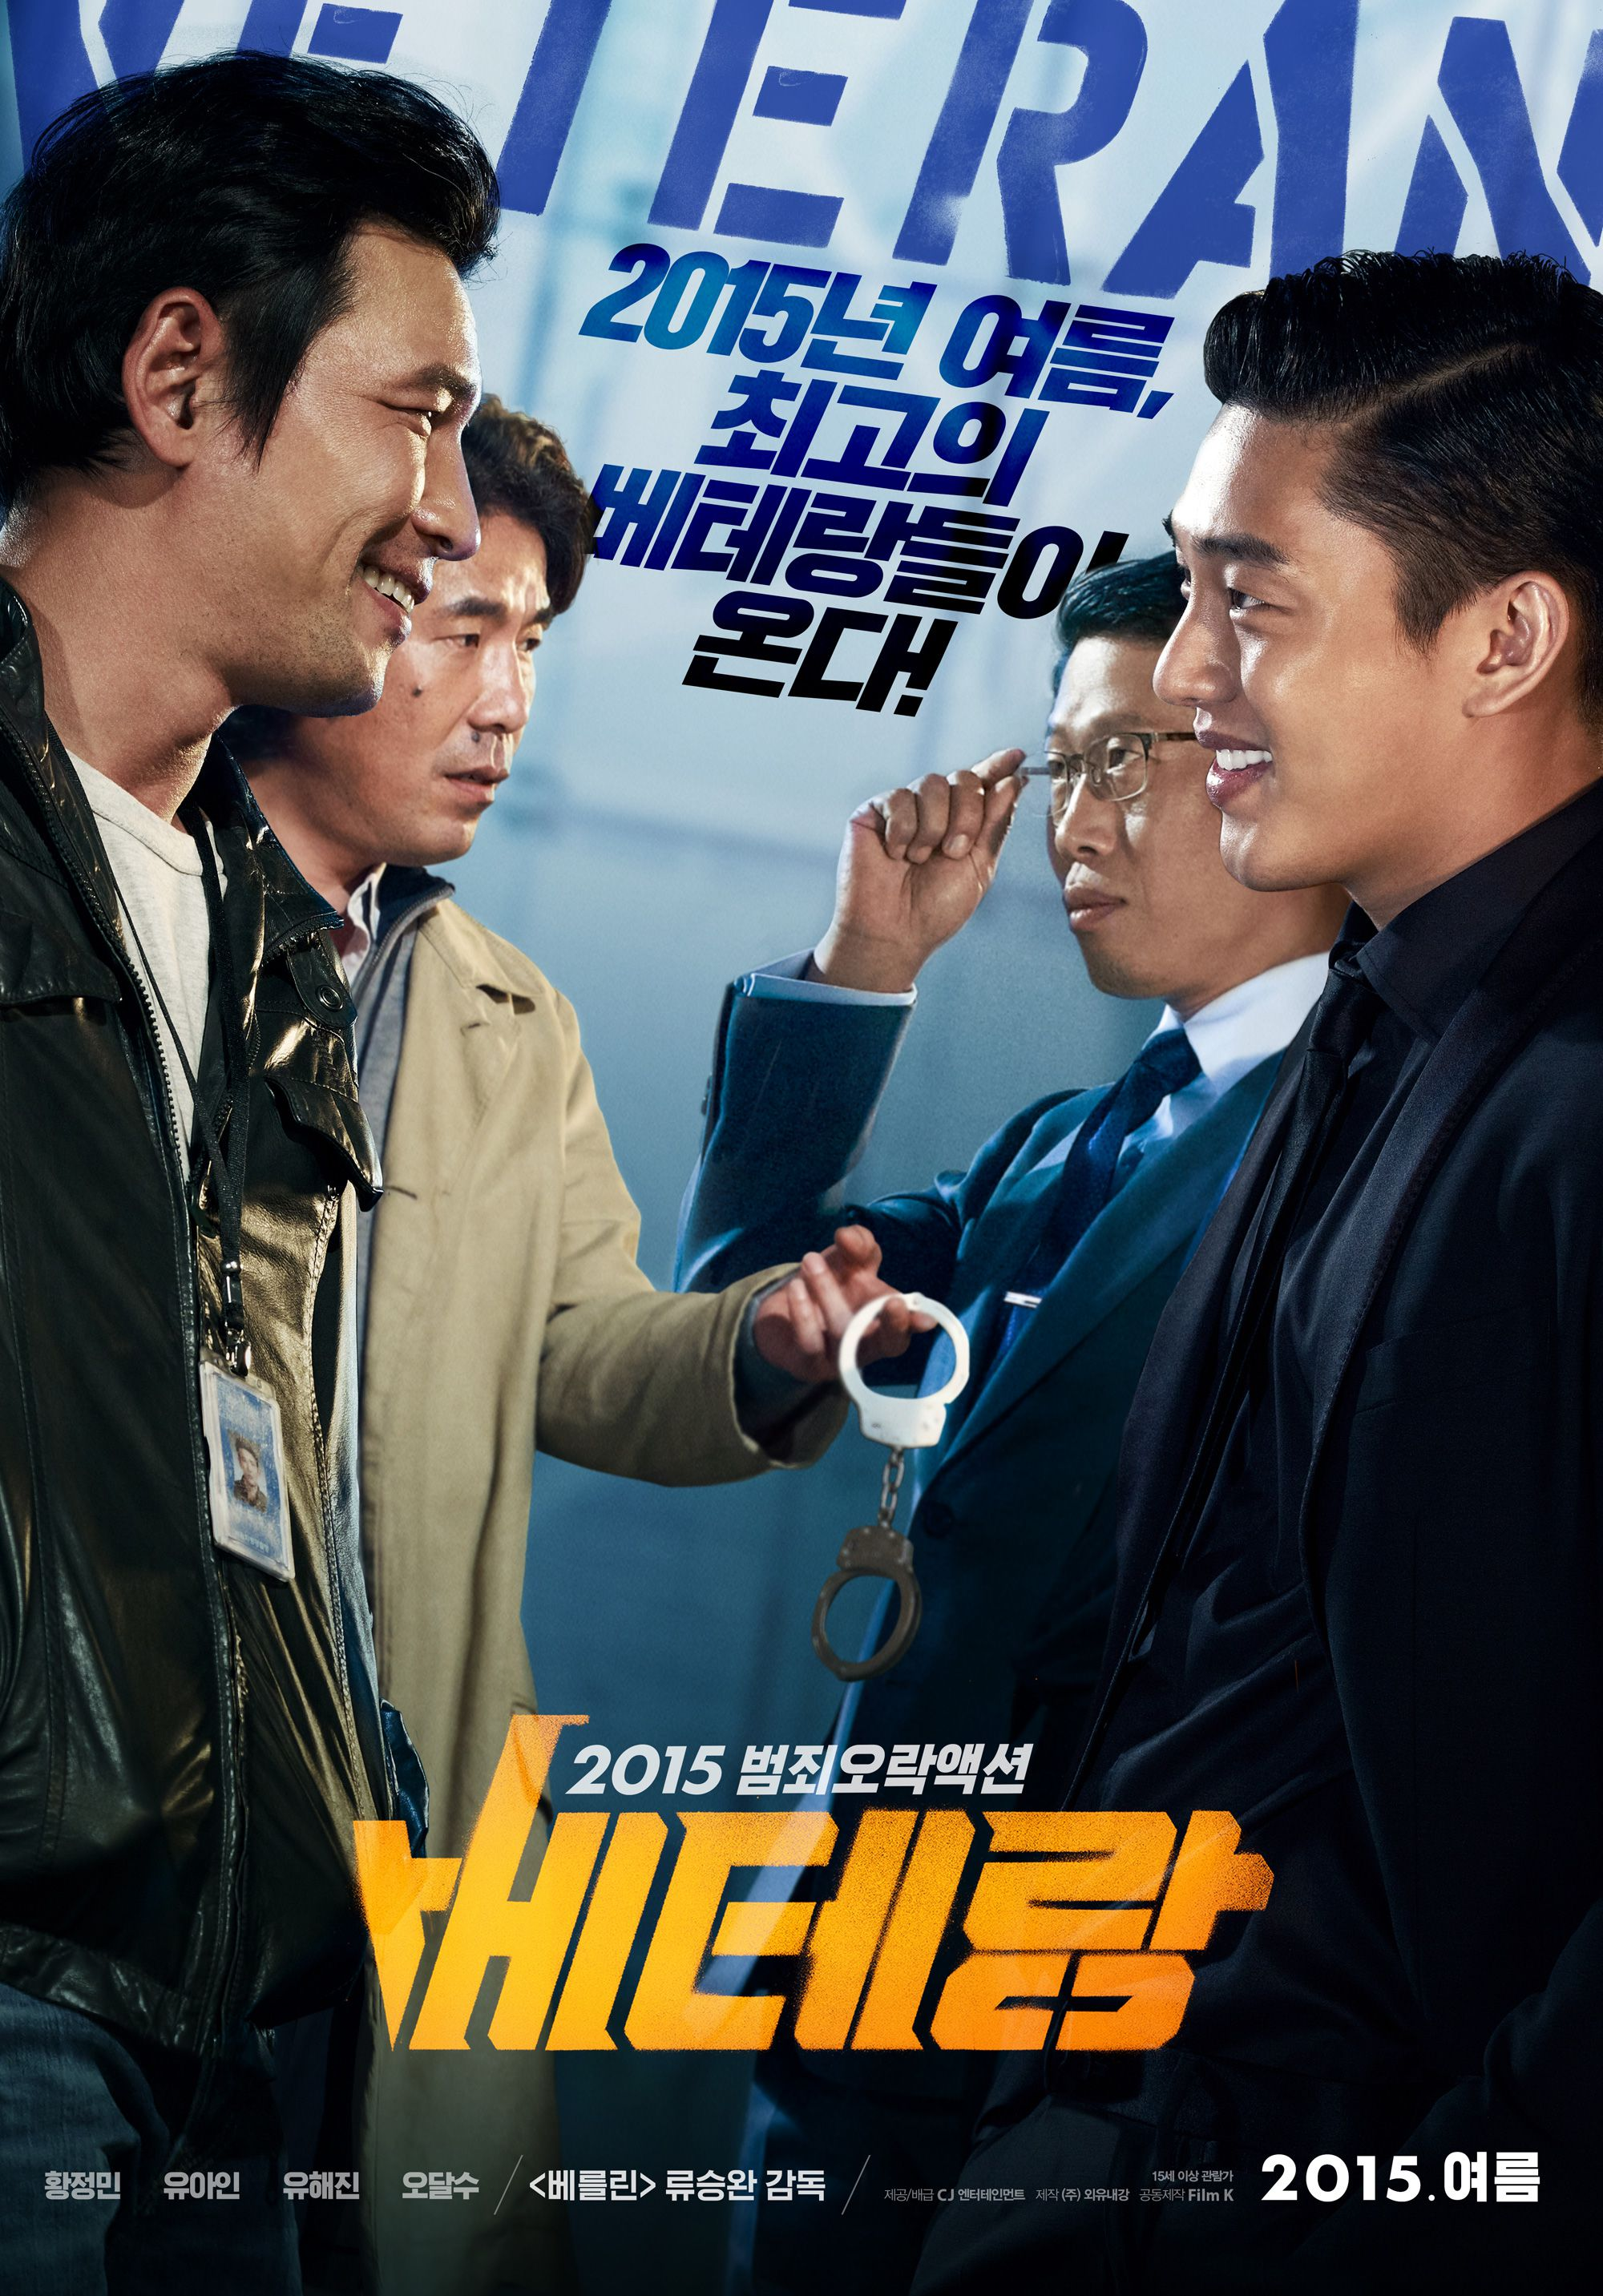 Veteran - Korean Movie-tp1.jpg